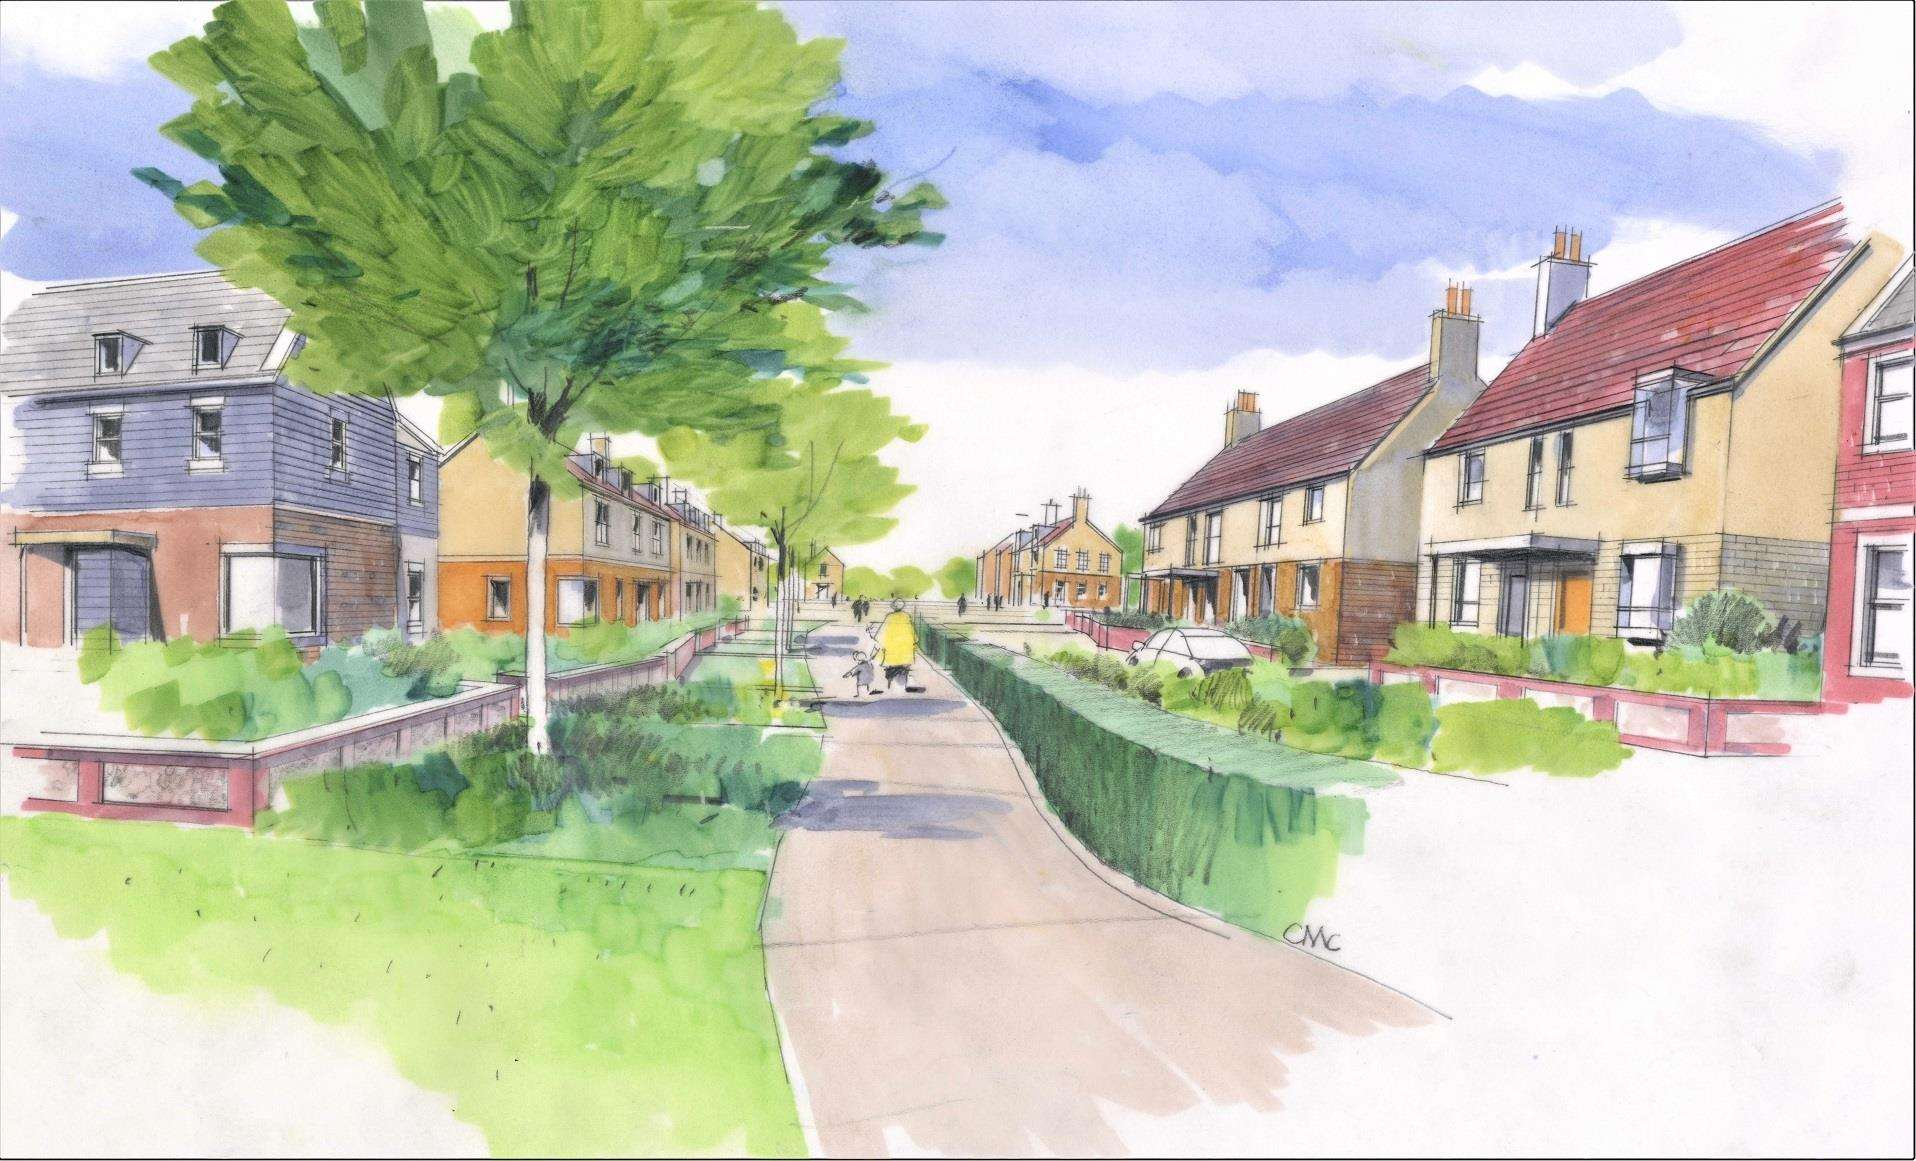 Artist's impression of the proposed Weavers Green housing development in Boxford. Image supplied by Catesby Estates. (6869740)